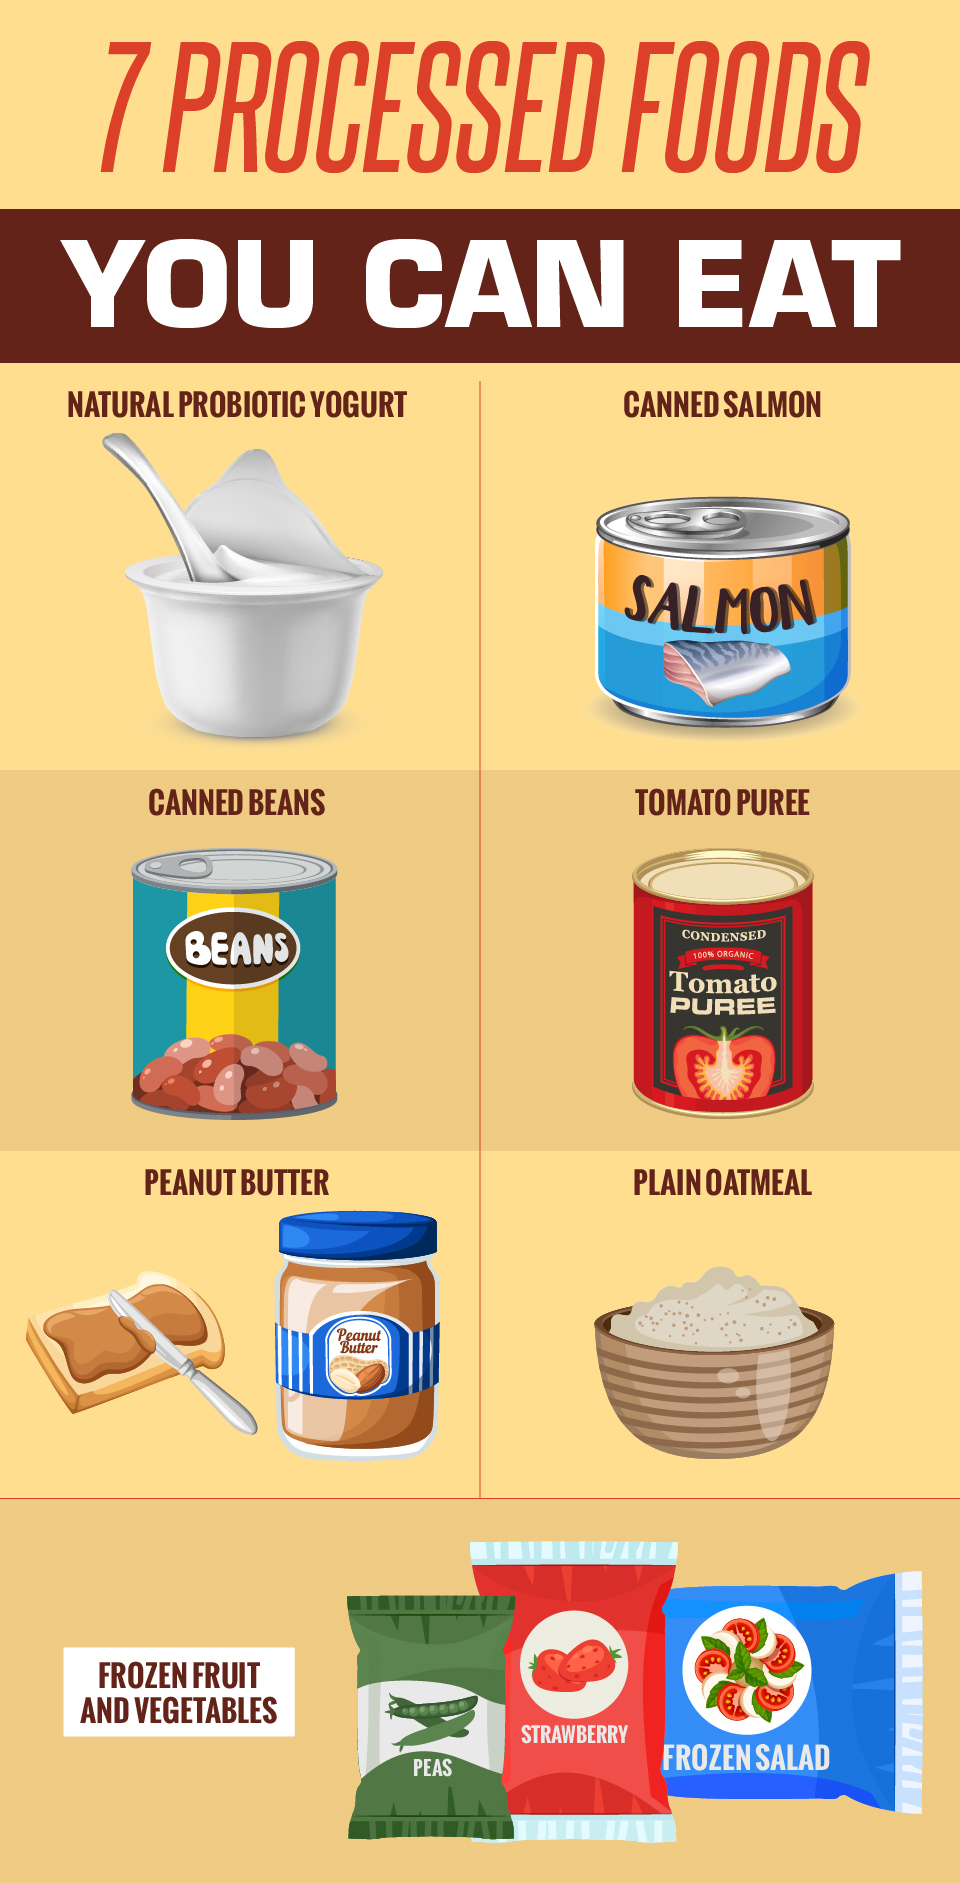 7 Processed Foods You Can Eat